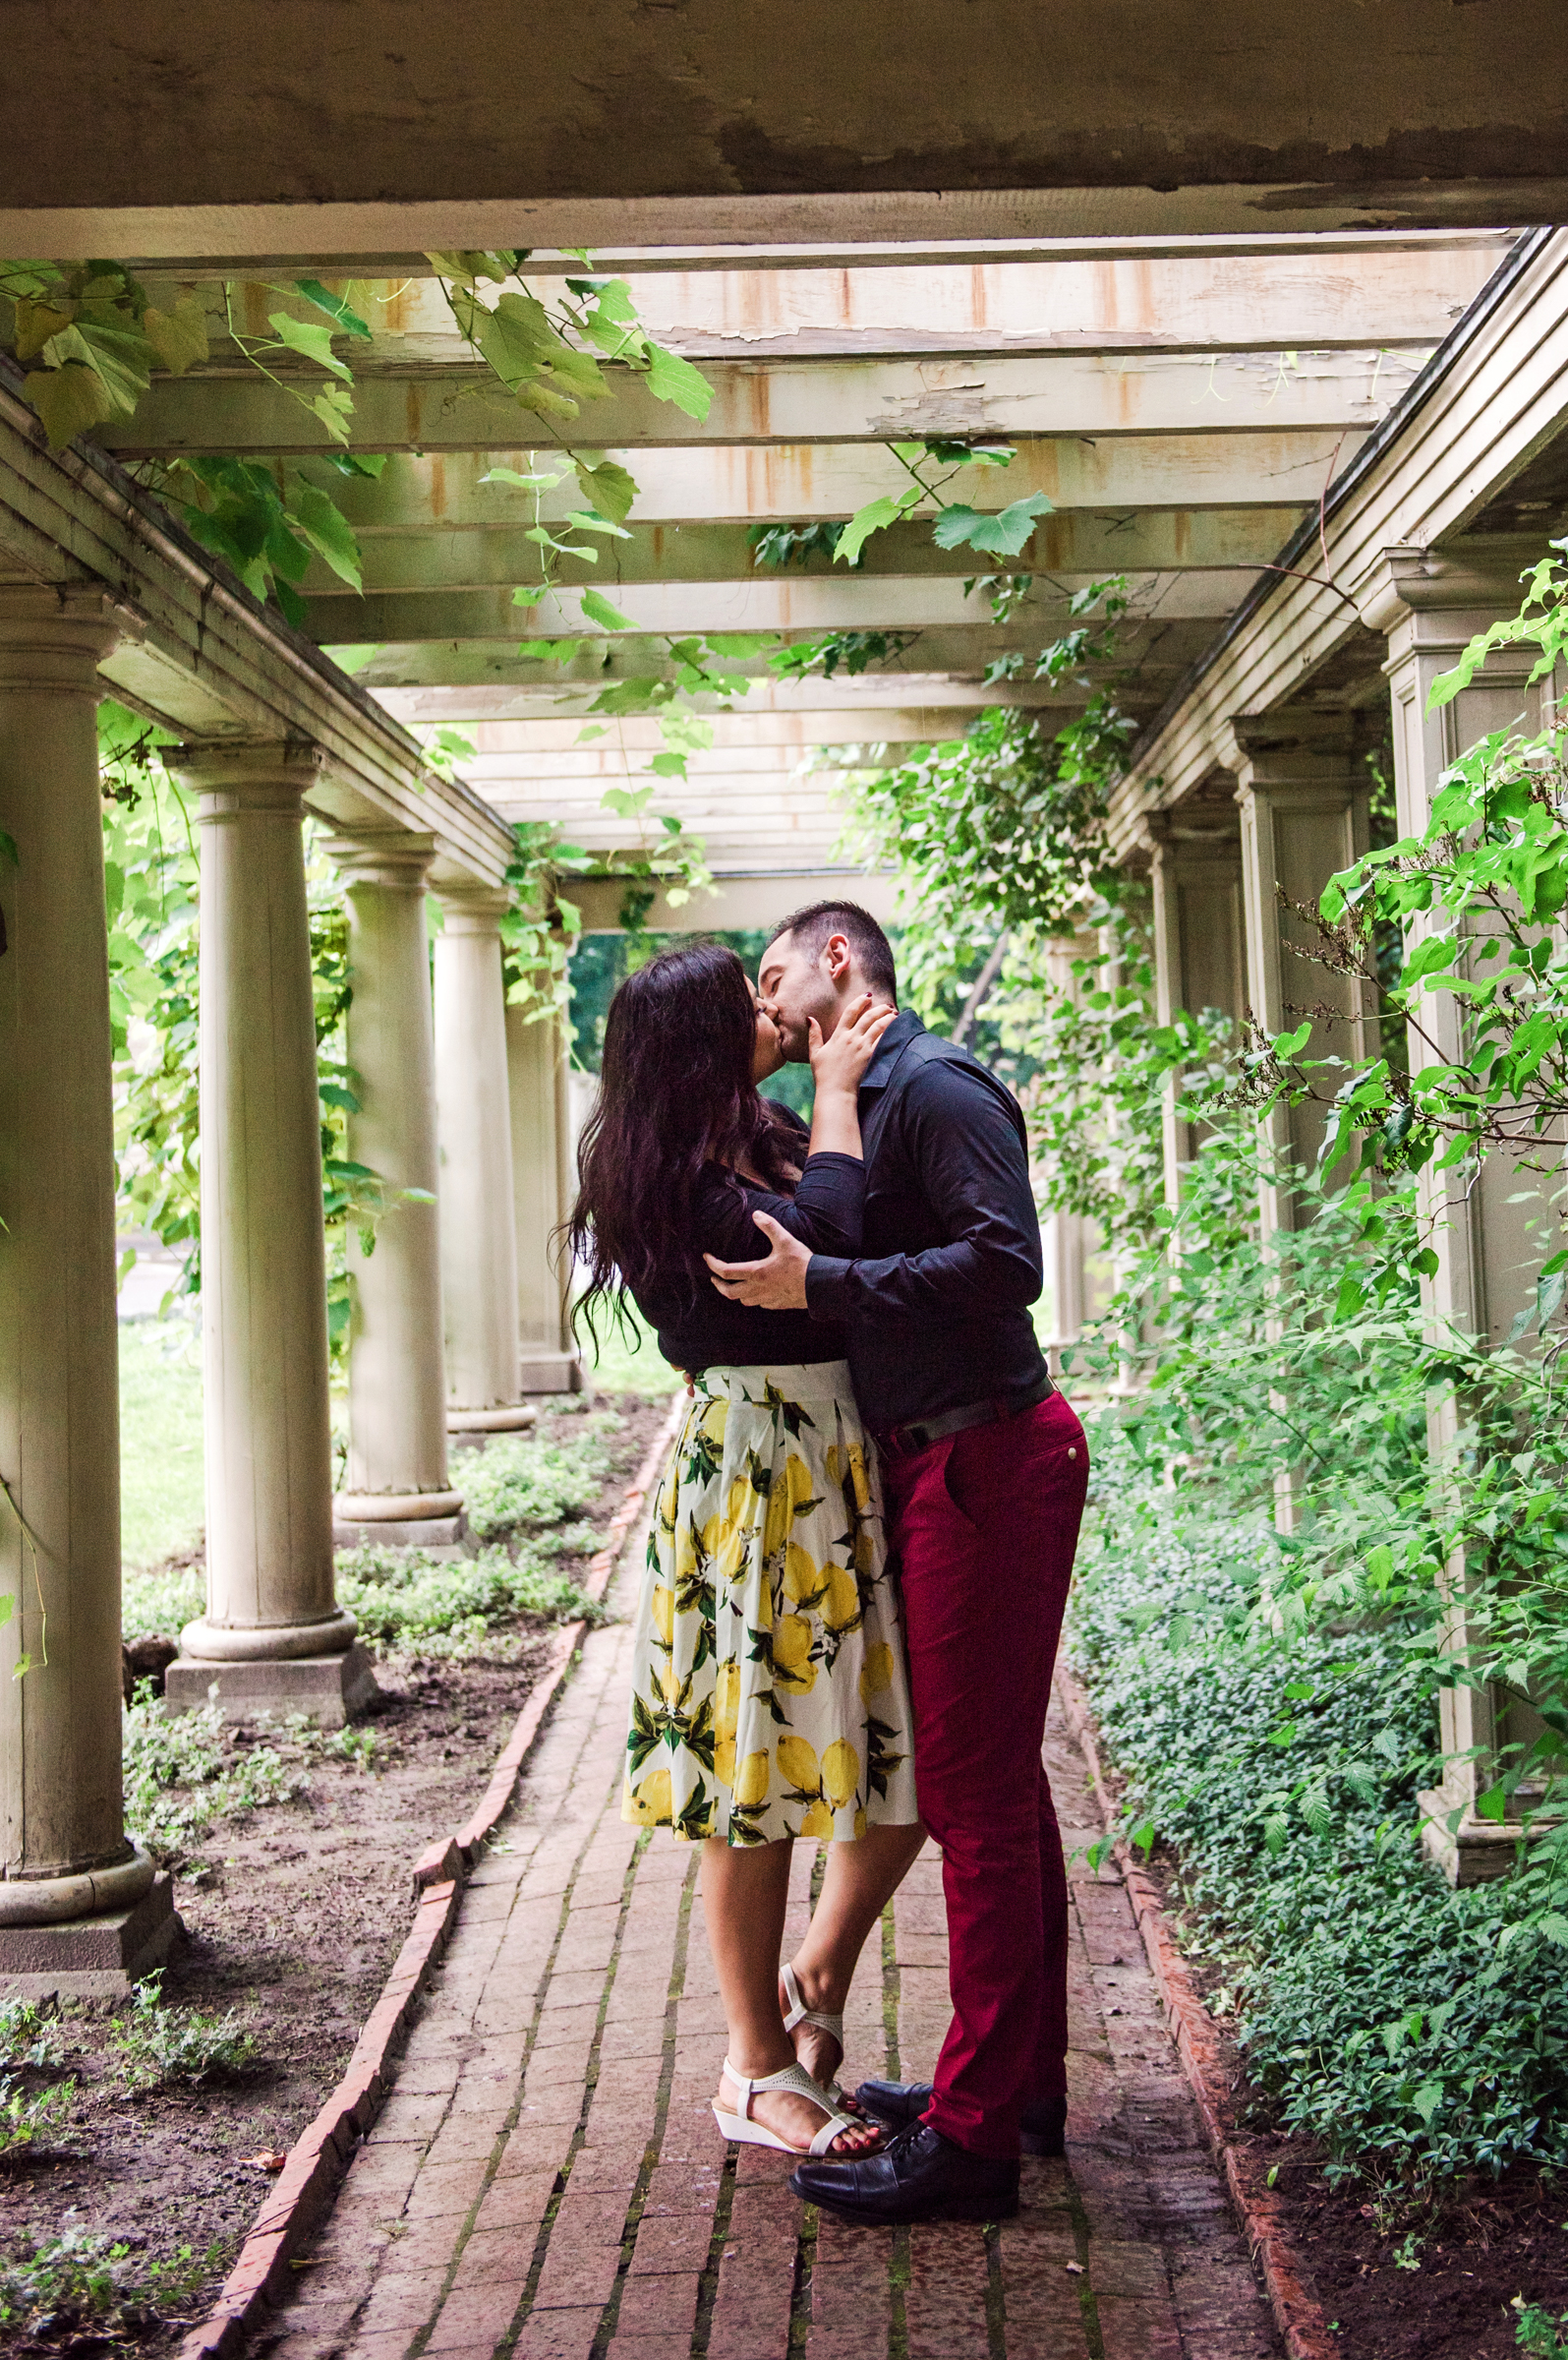 George_Eastman_House_Rochester_Engagement_Session_JILL_STUDIO_Rochester_NY_Photographer_DSC_6409.jpg